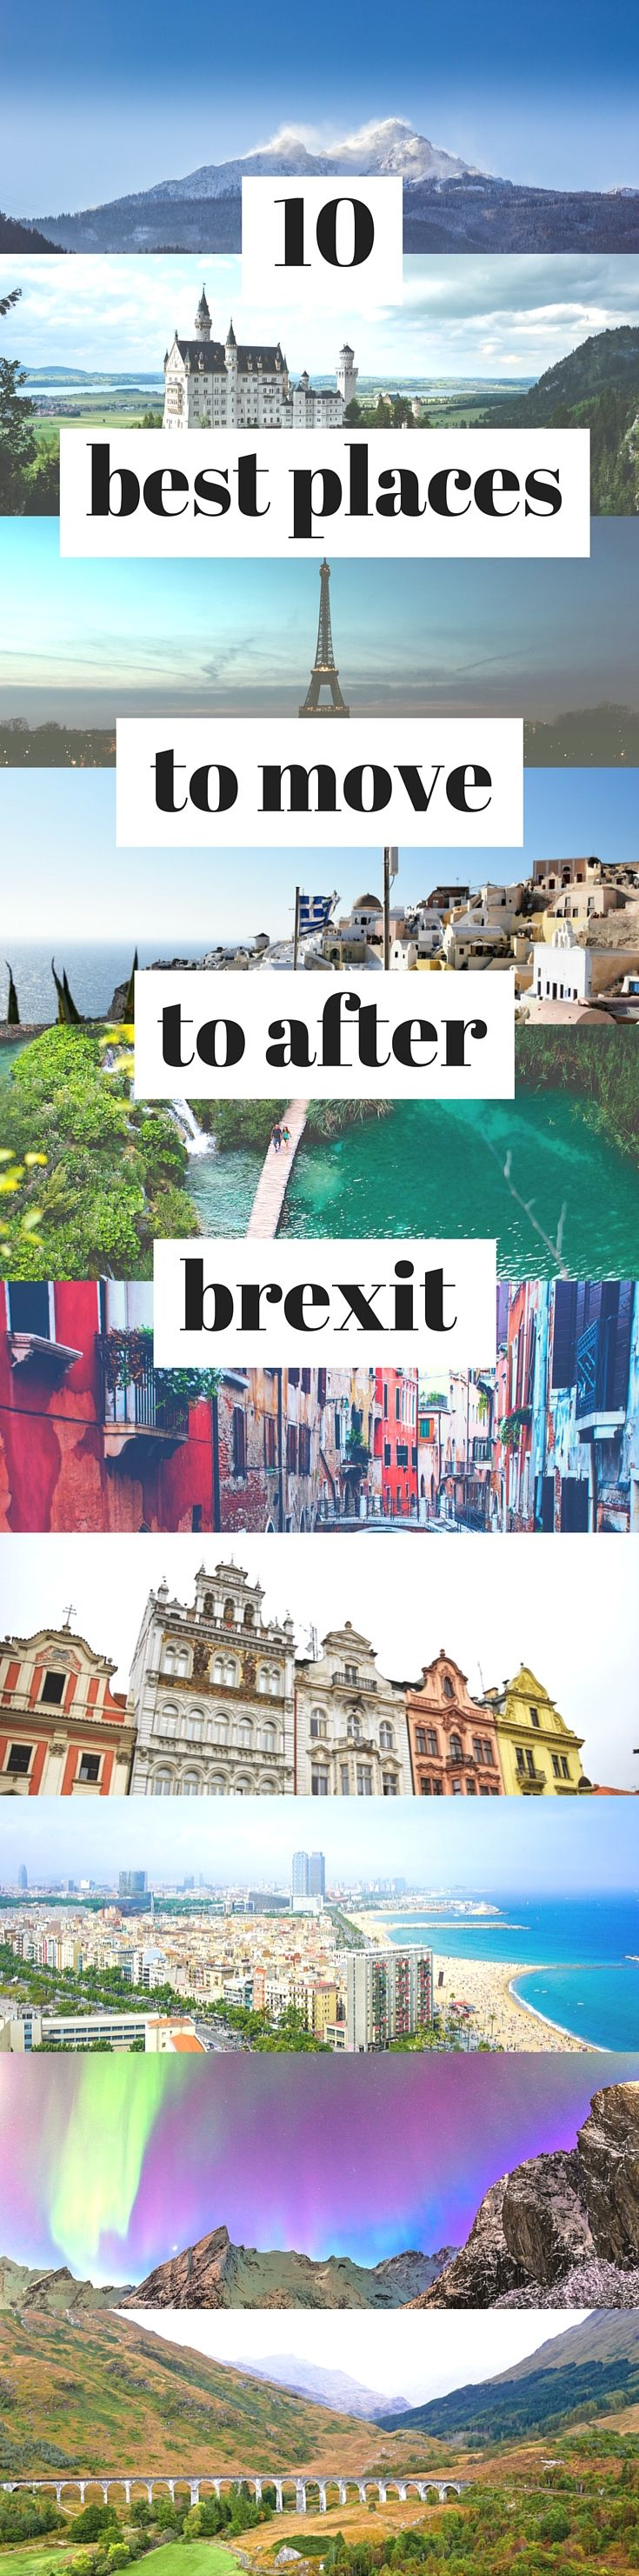 Upset with the Brexit vote result? I've put together a list of the ten best places to move to after Brexit, if the UK leaves the EU. If you love Europe, read on...